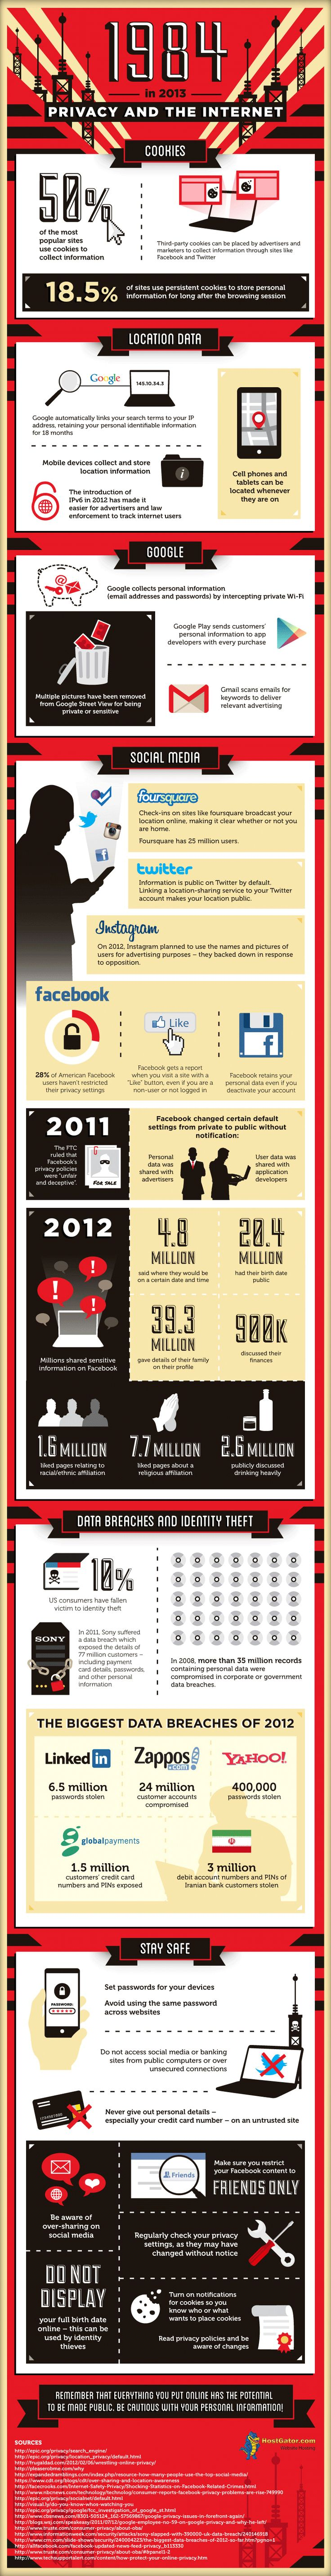 The Worrying State Of Internet Privacy In 2013 [Infographic] - Bit Rebels